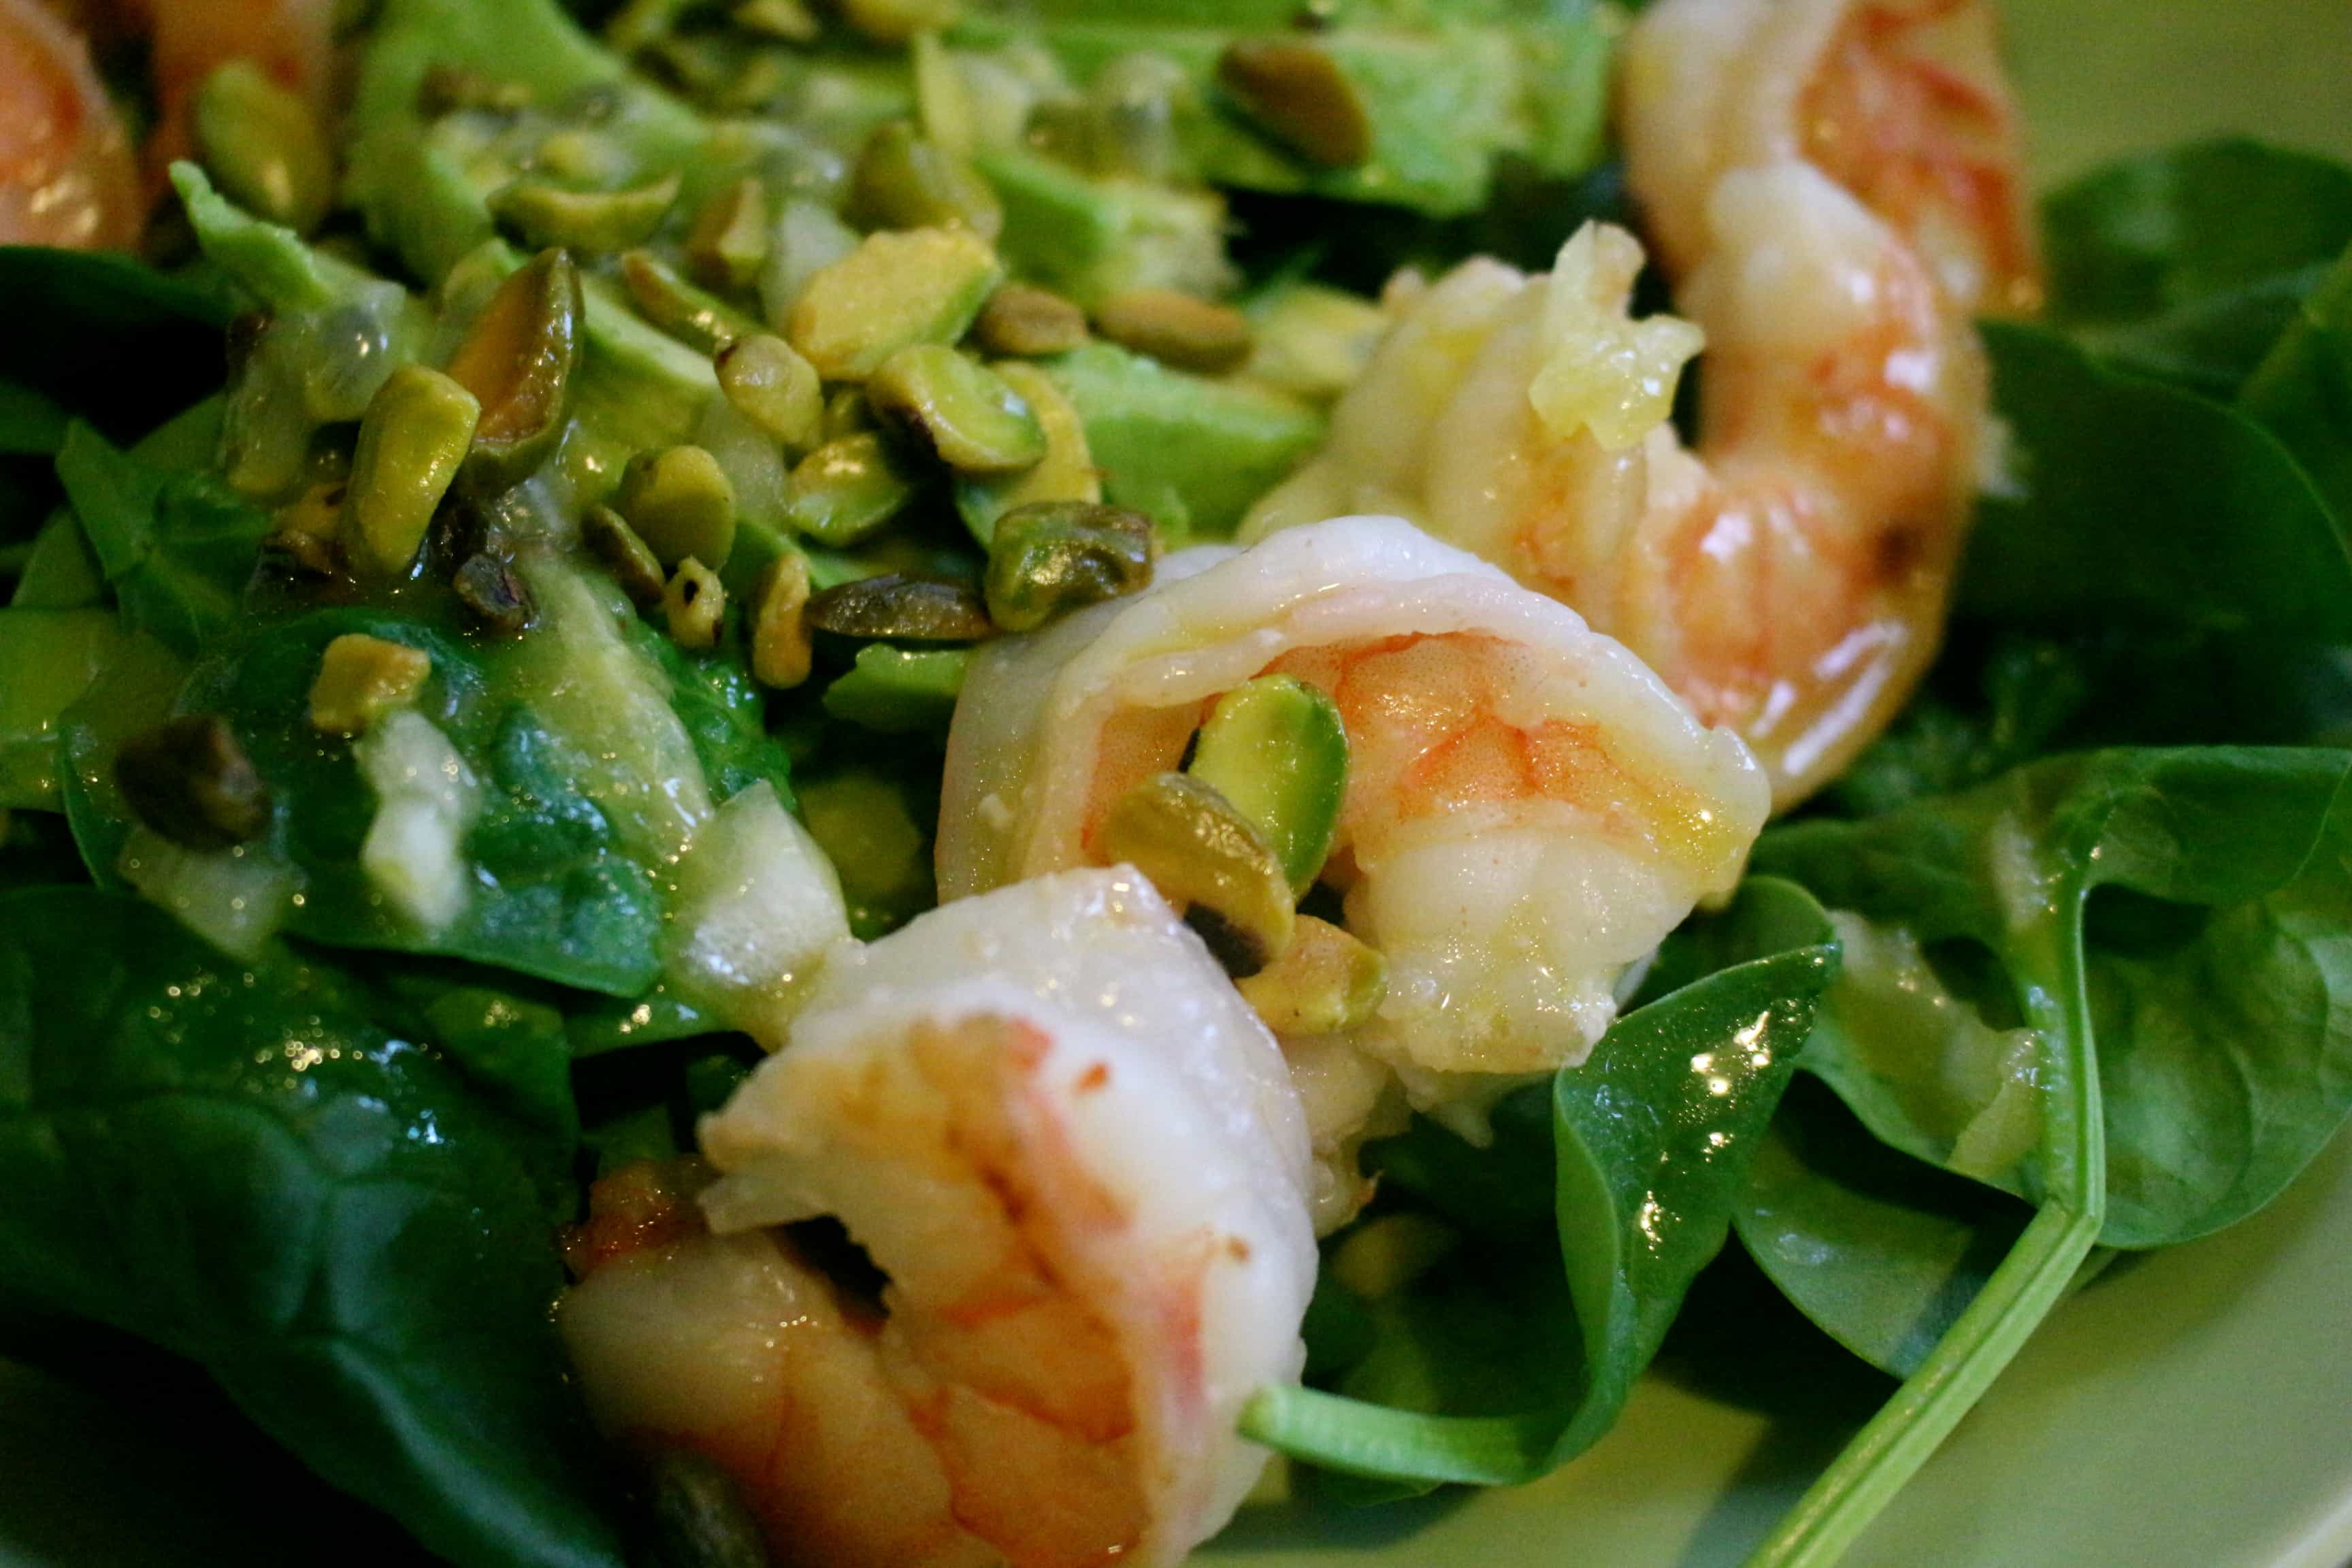 Spinach & Shrimp Salad with Passionfruit Vinaigrette